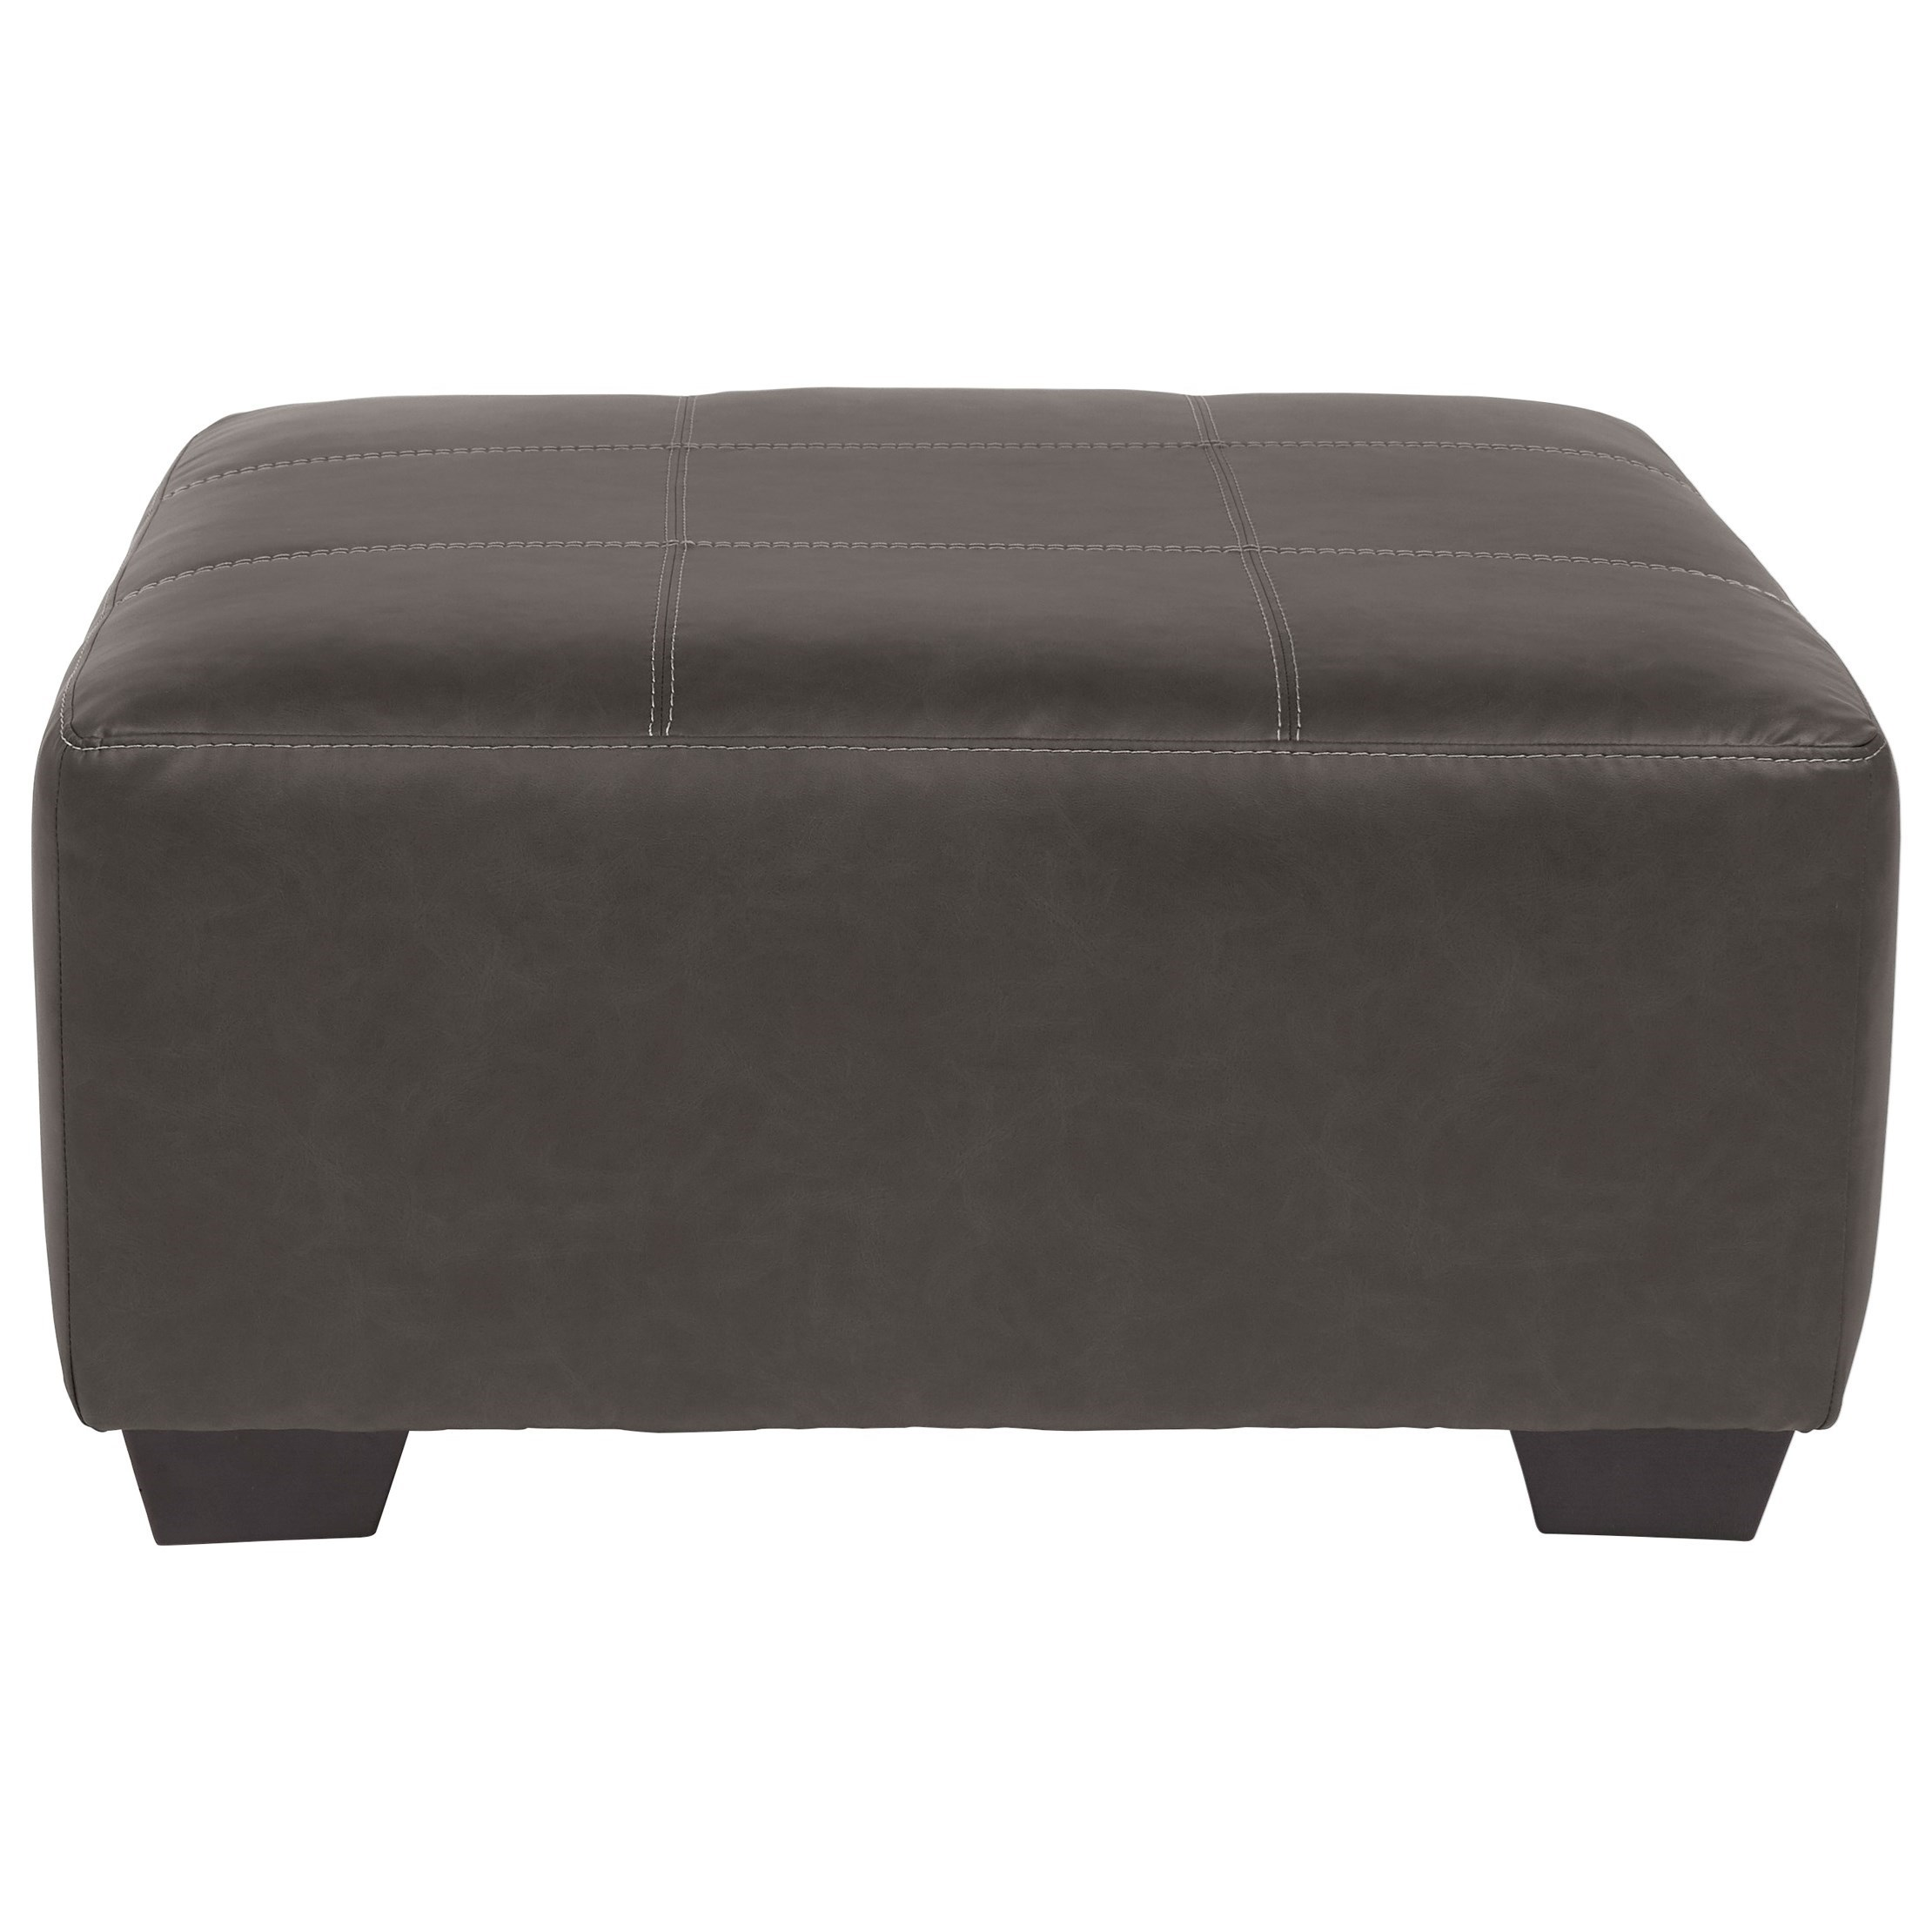 Aberton Oversized Accent Ottoman by Benchcraft at Rooms and Rest